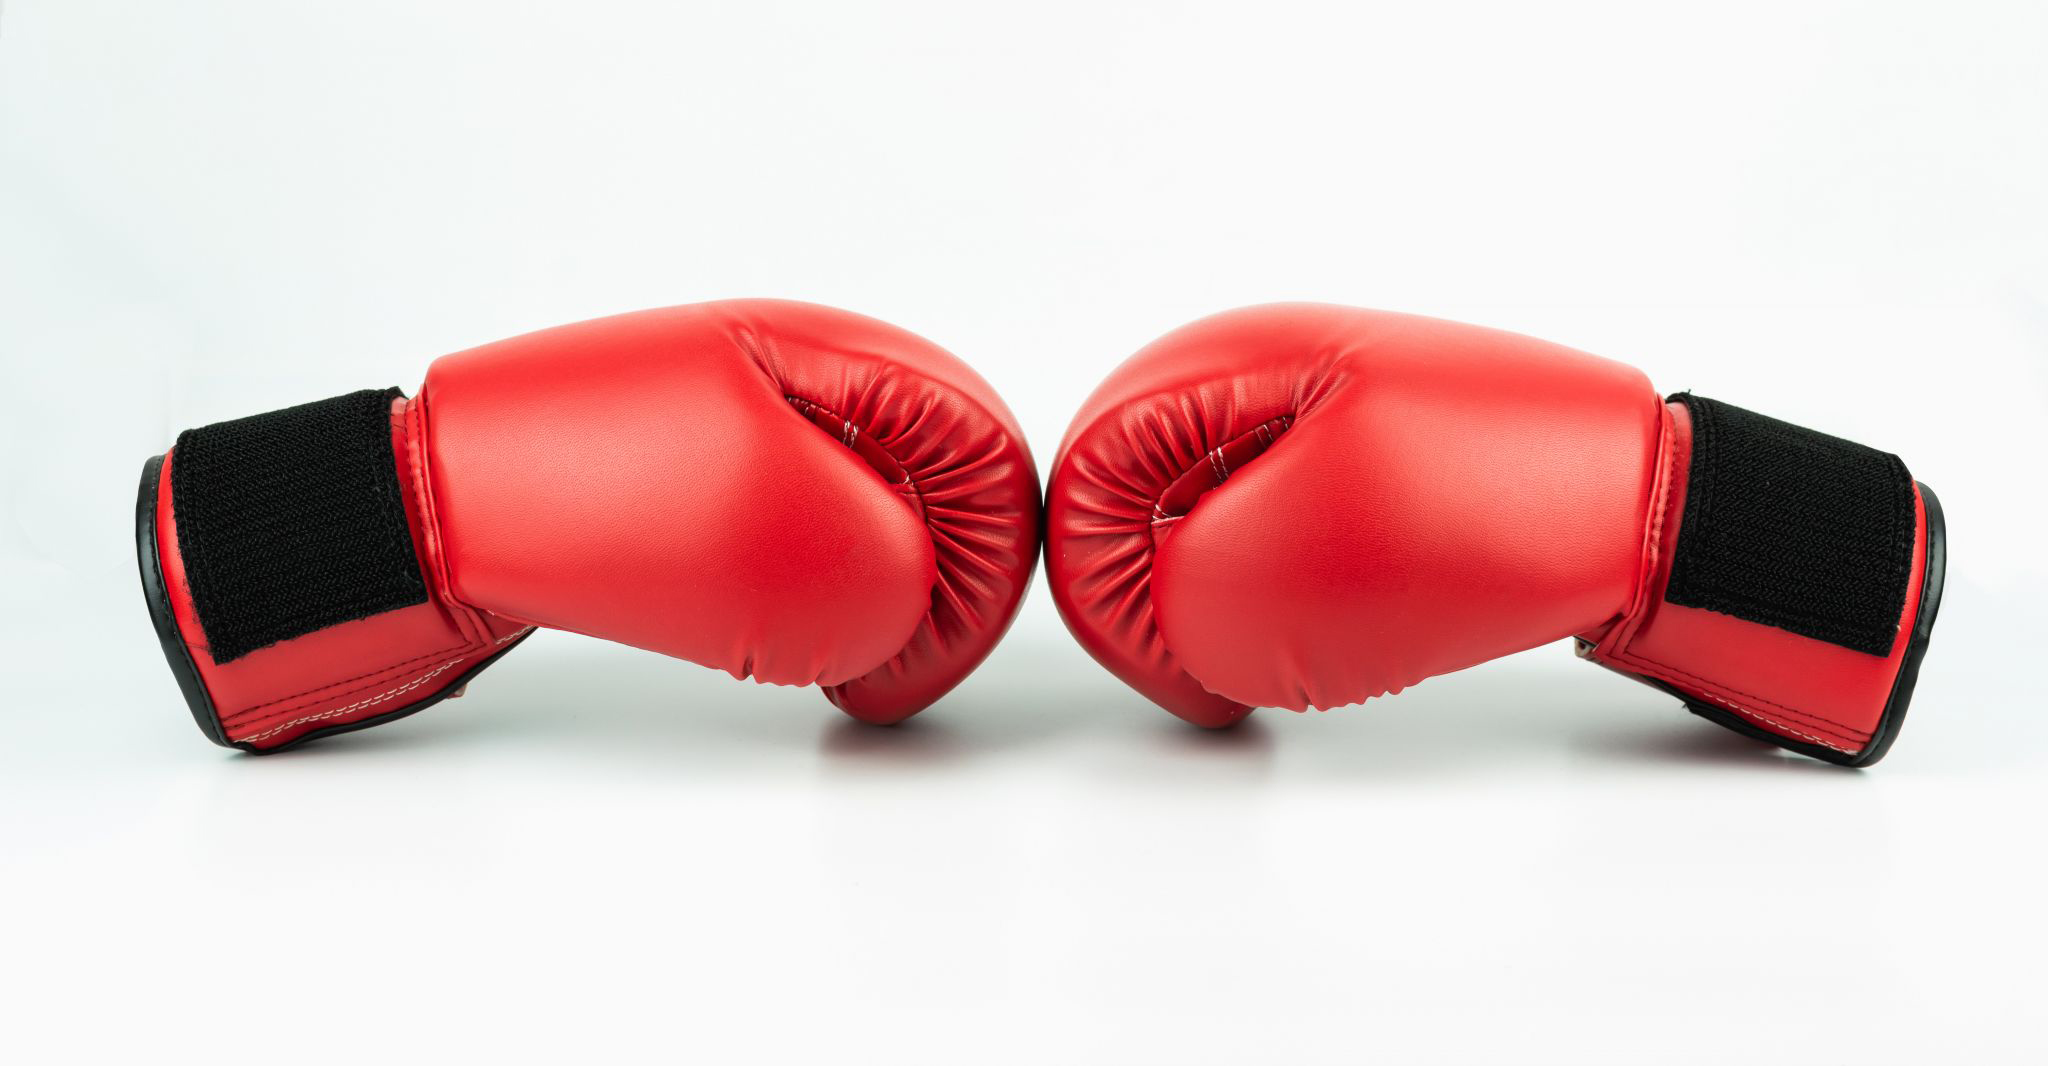 School scores rich haul in district boxing championship